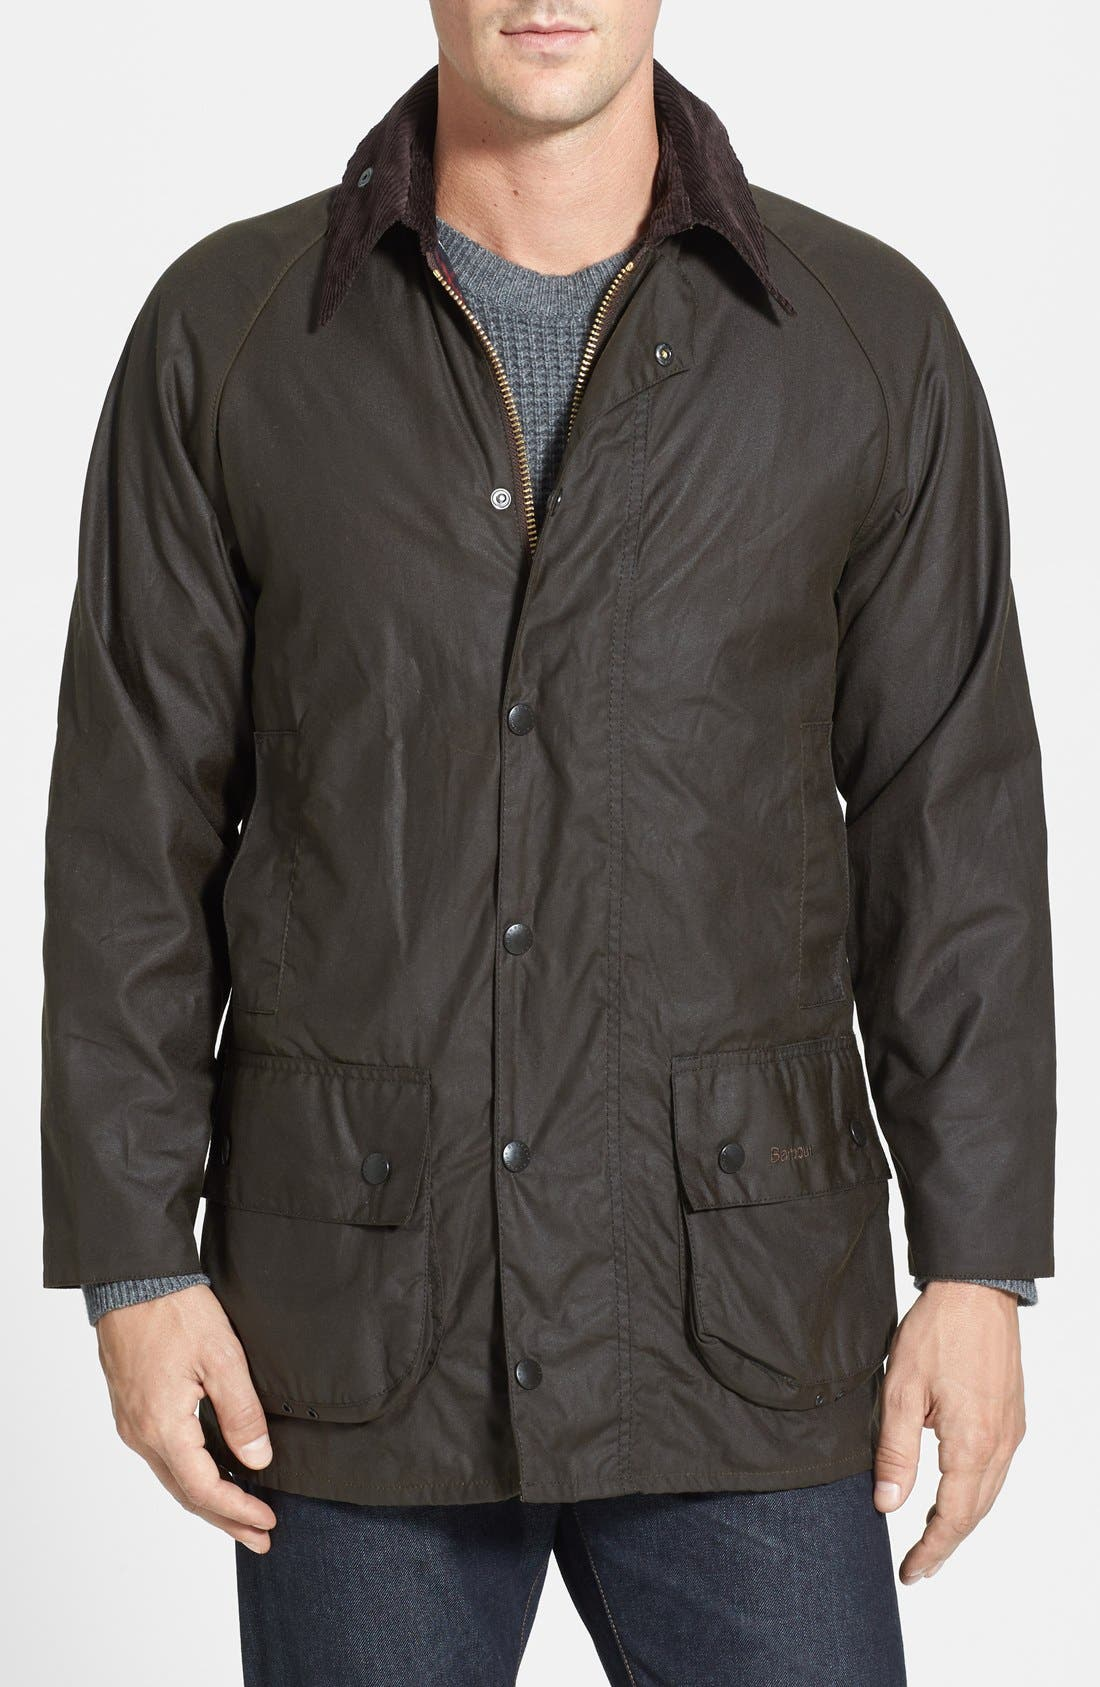 BARBOUR 'Classic Beaufort' Relaxed Fit Waxed Cotton Jacket, Main, color, OLIVE